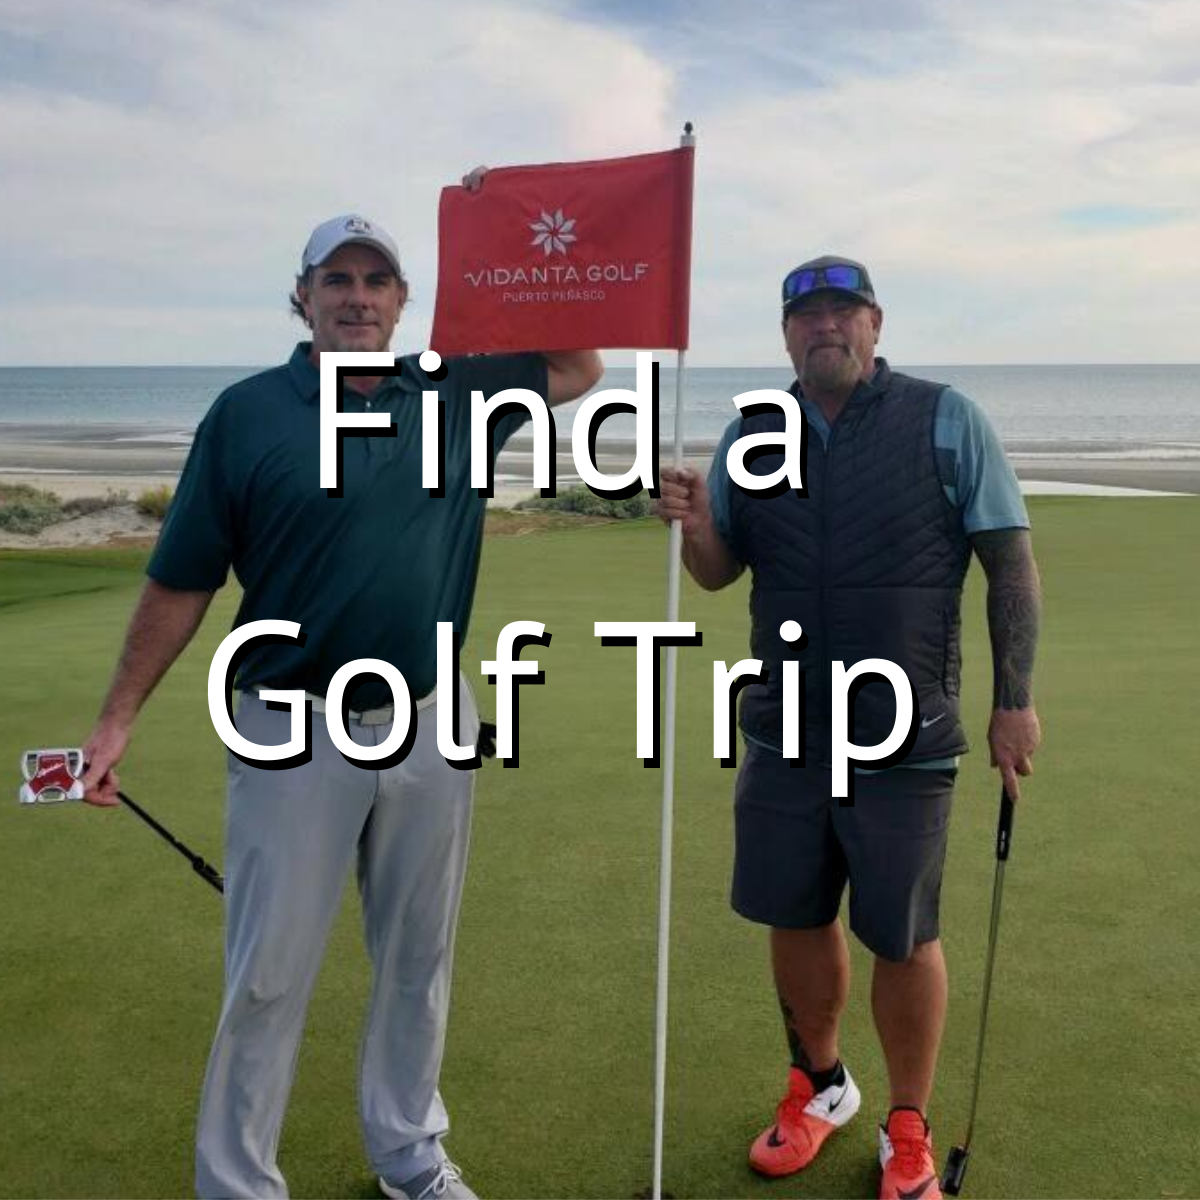 Golf & Grow trips are the best way to take great golf trips with your friends